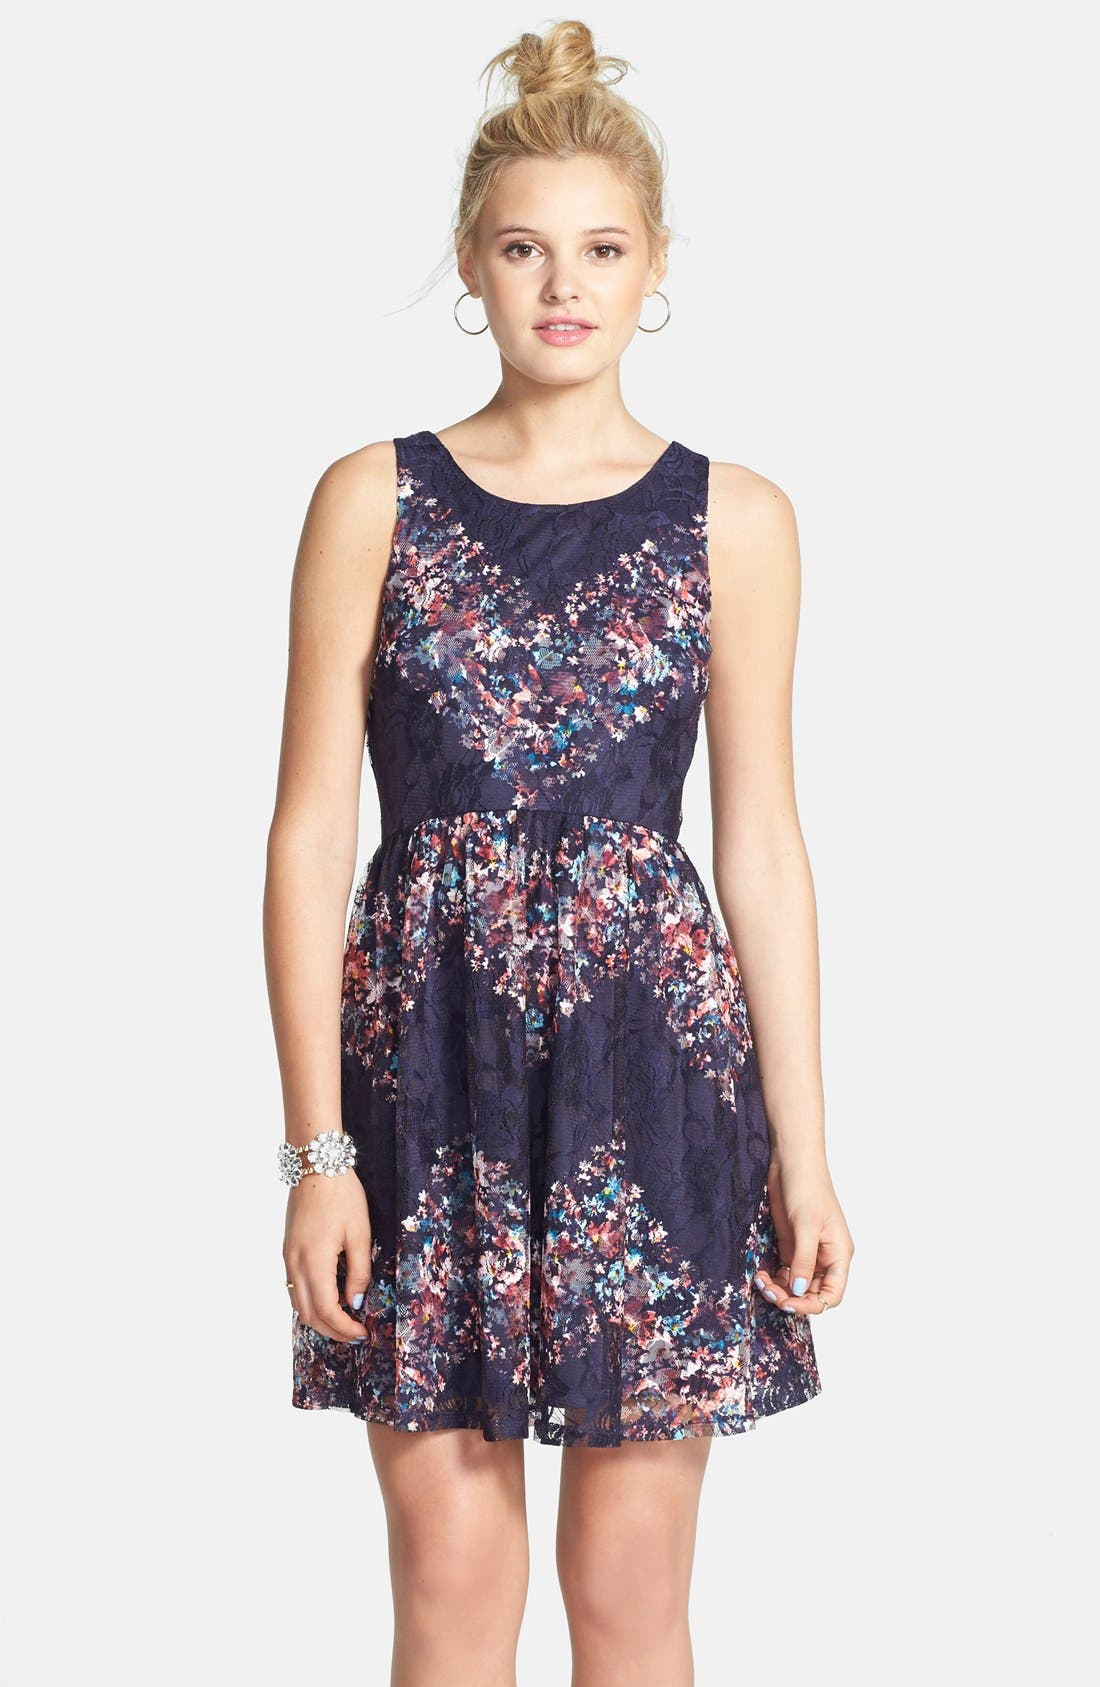 Fire Stretch Lace Skater Dress,                         Main,                         color, Navy/ Blush/ Teal